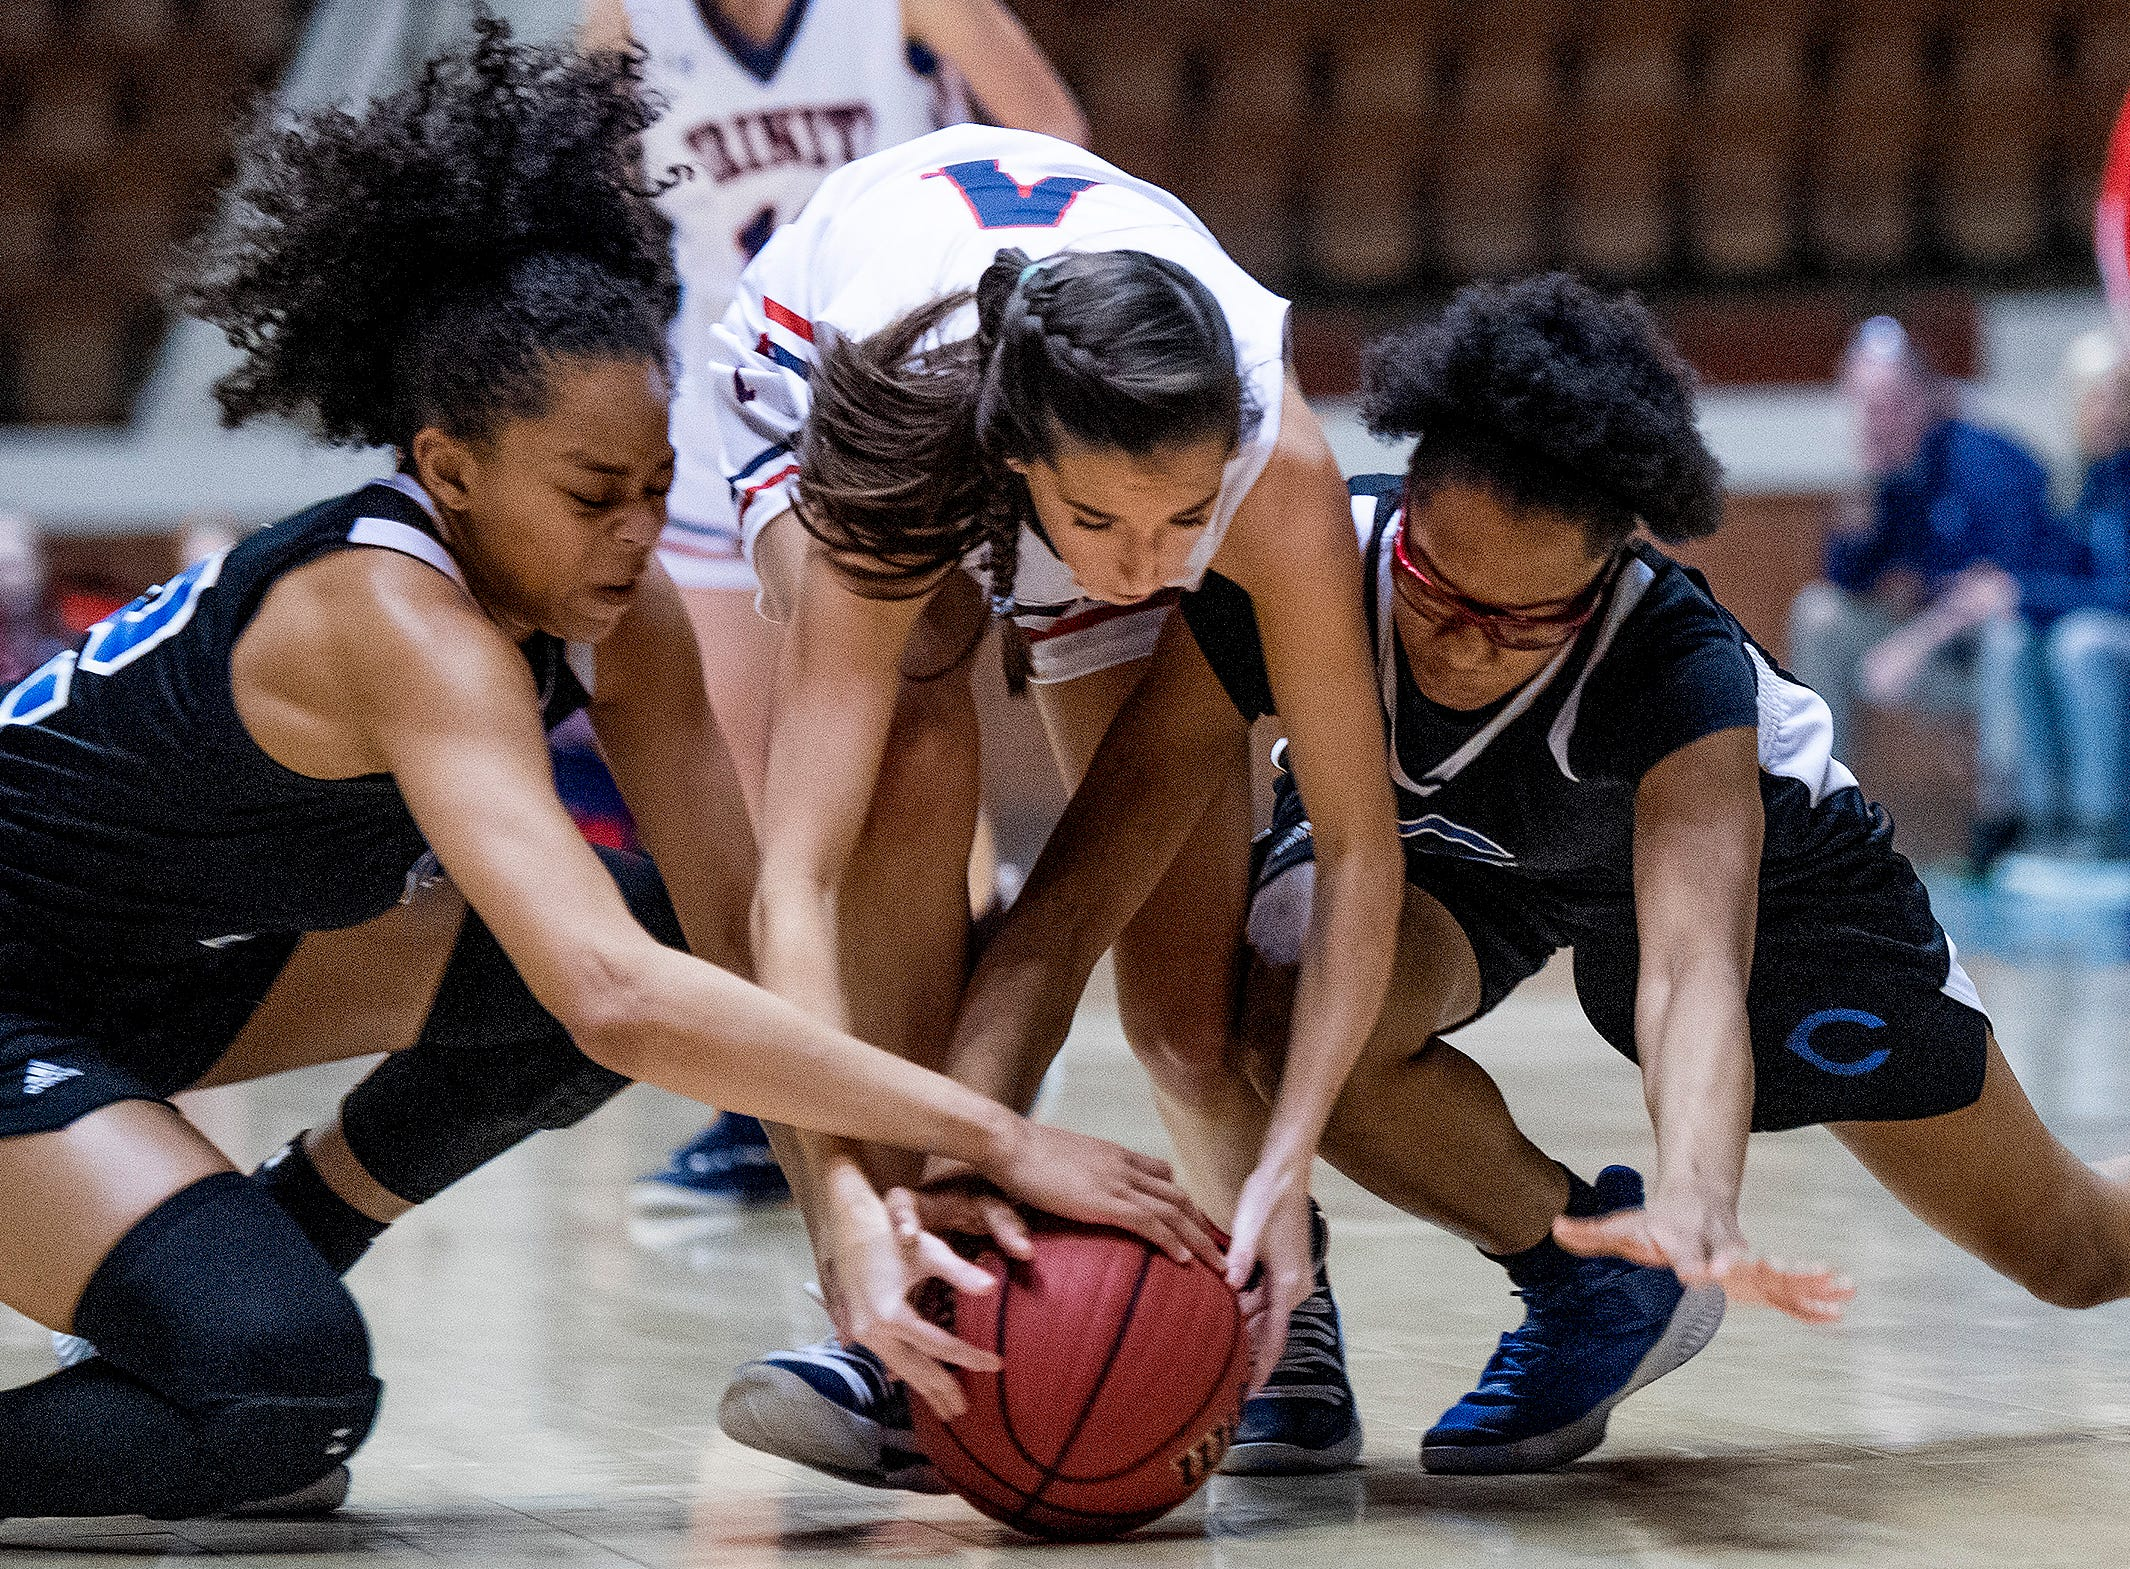 Childersburg's Keasia McKinney and Aubrey Foy fight for the ball with Trinity's Brooke Avant in AHSAA Regional action at Garrett Coliseum in Montgomery, Ala., on Monday February 18, 2019.